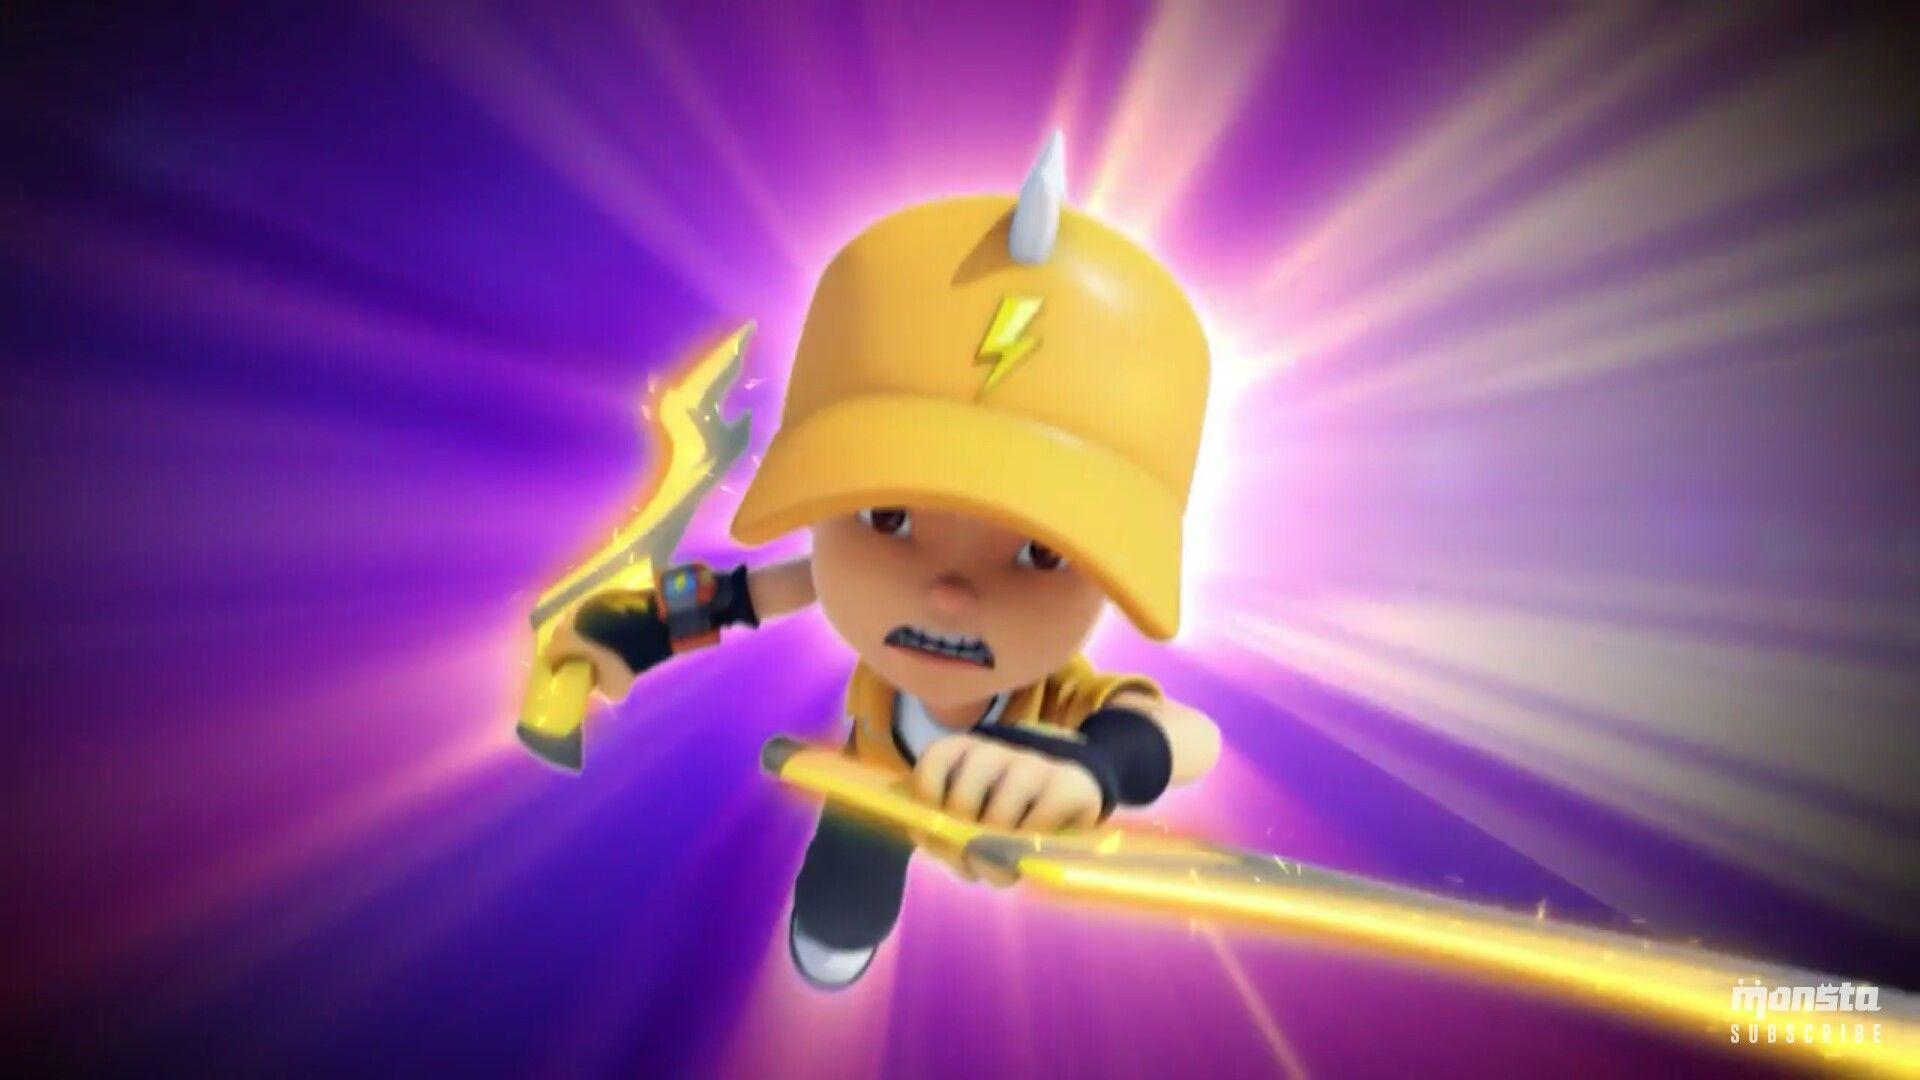 Boboiboy HD Wallpaper For Android APK Download